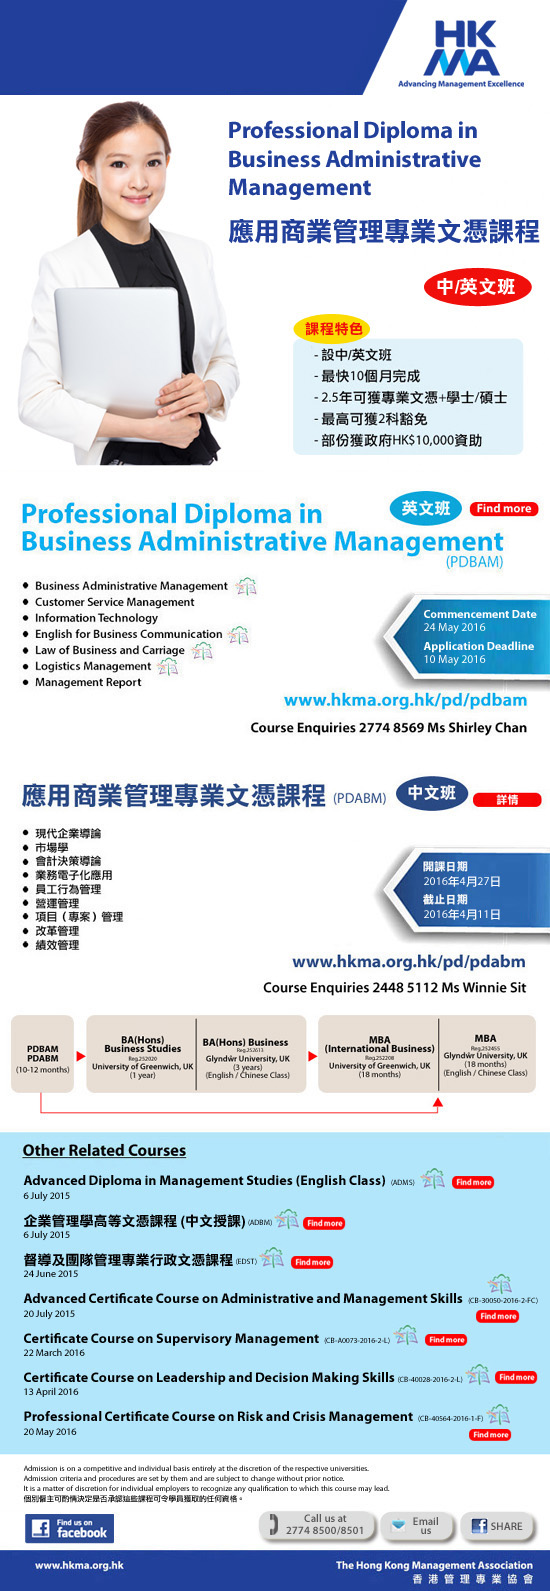 Professional Diploma in Business Administrative Management